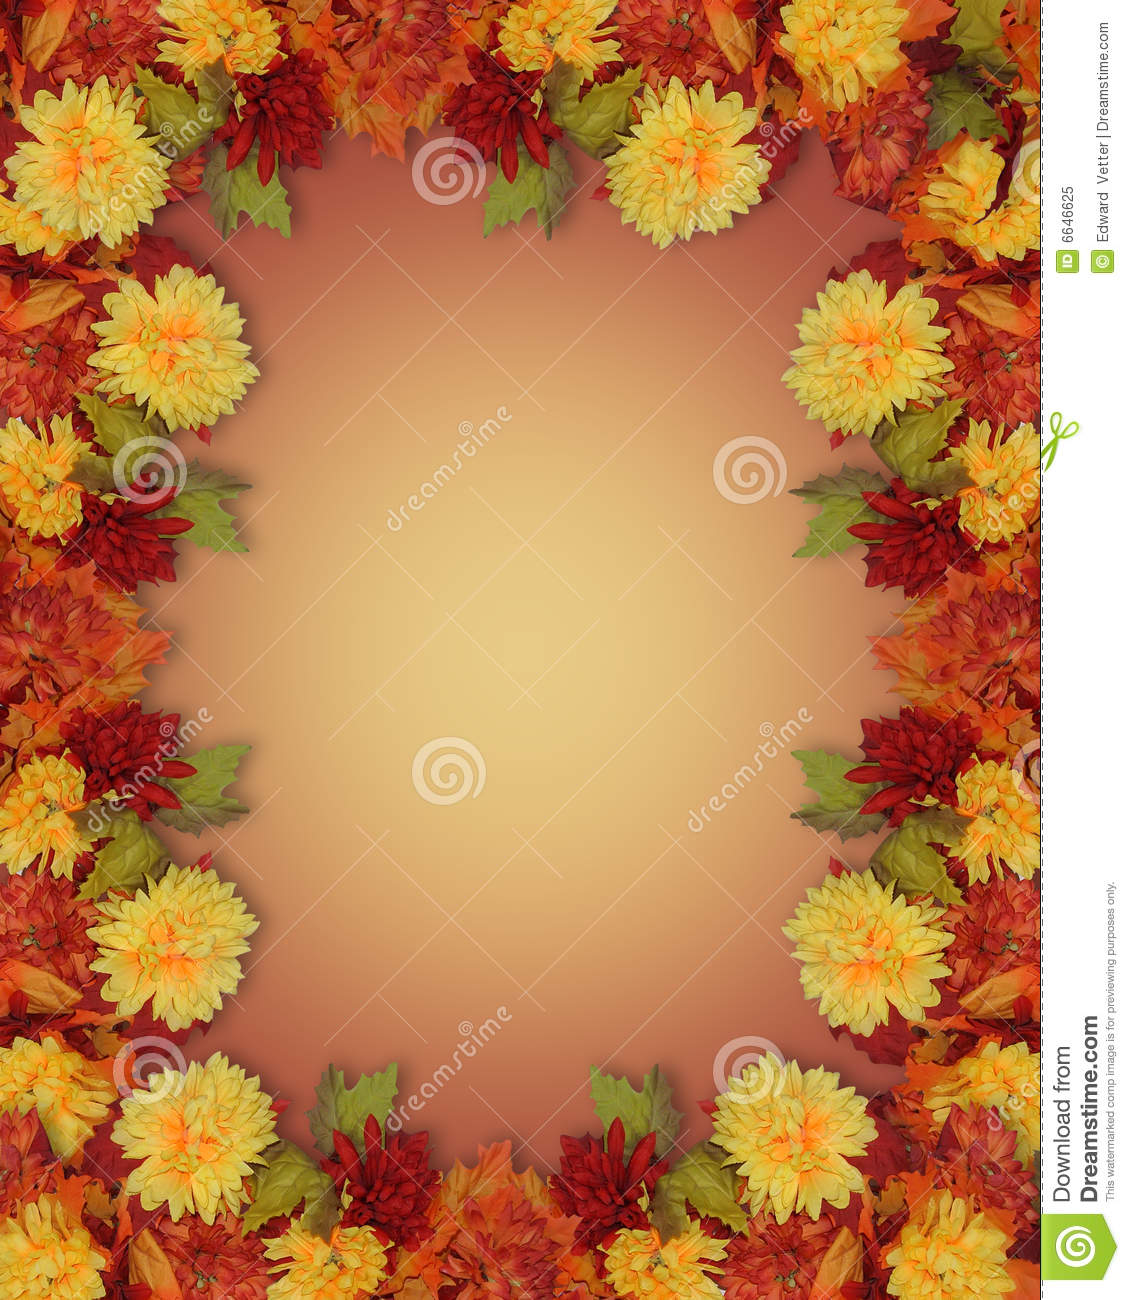 Beautiful christmas bells royalty free stock - Image And Illustration Composition Mums For Thanksgiving Fall Autumn